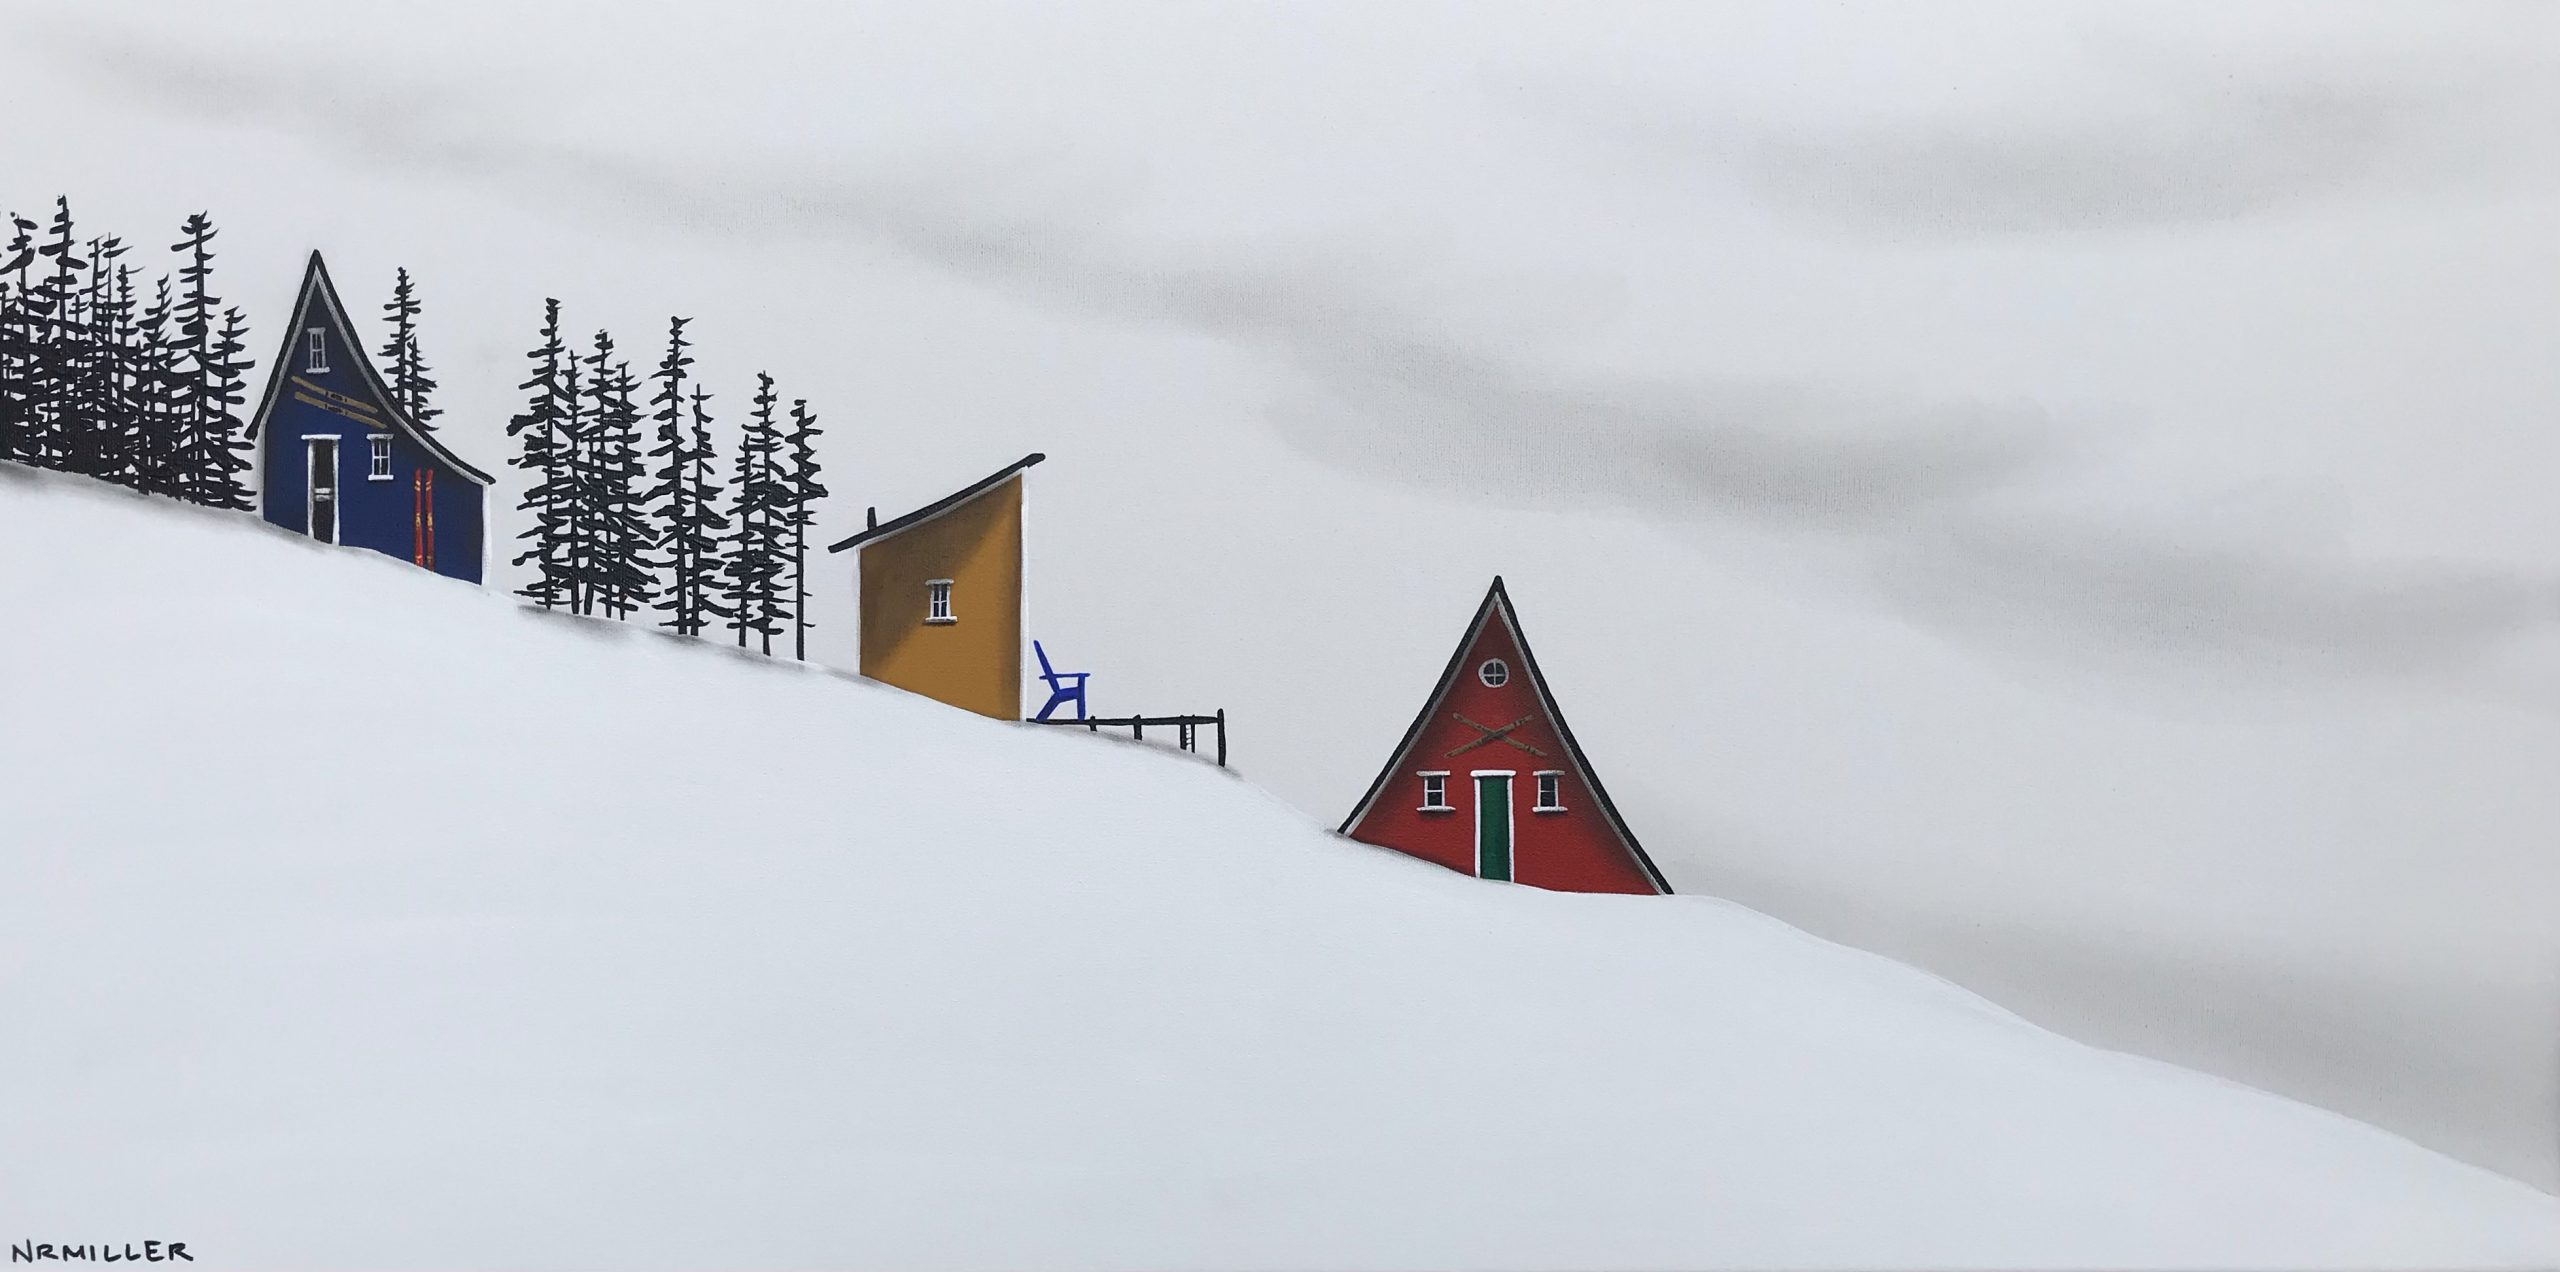 Spring Ski Glee, mixed media landscape painting by Natasha Miller | Effusion Art Gallery + Cast Glass Studio, Invermere BC